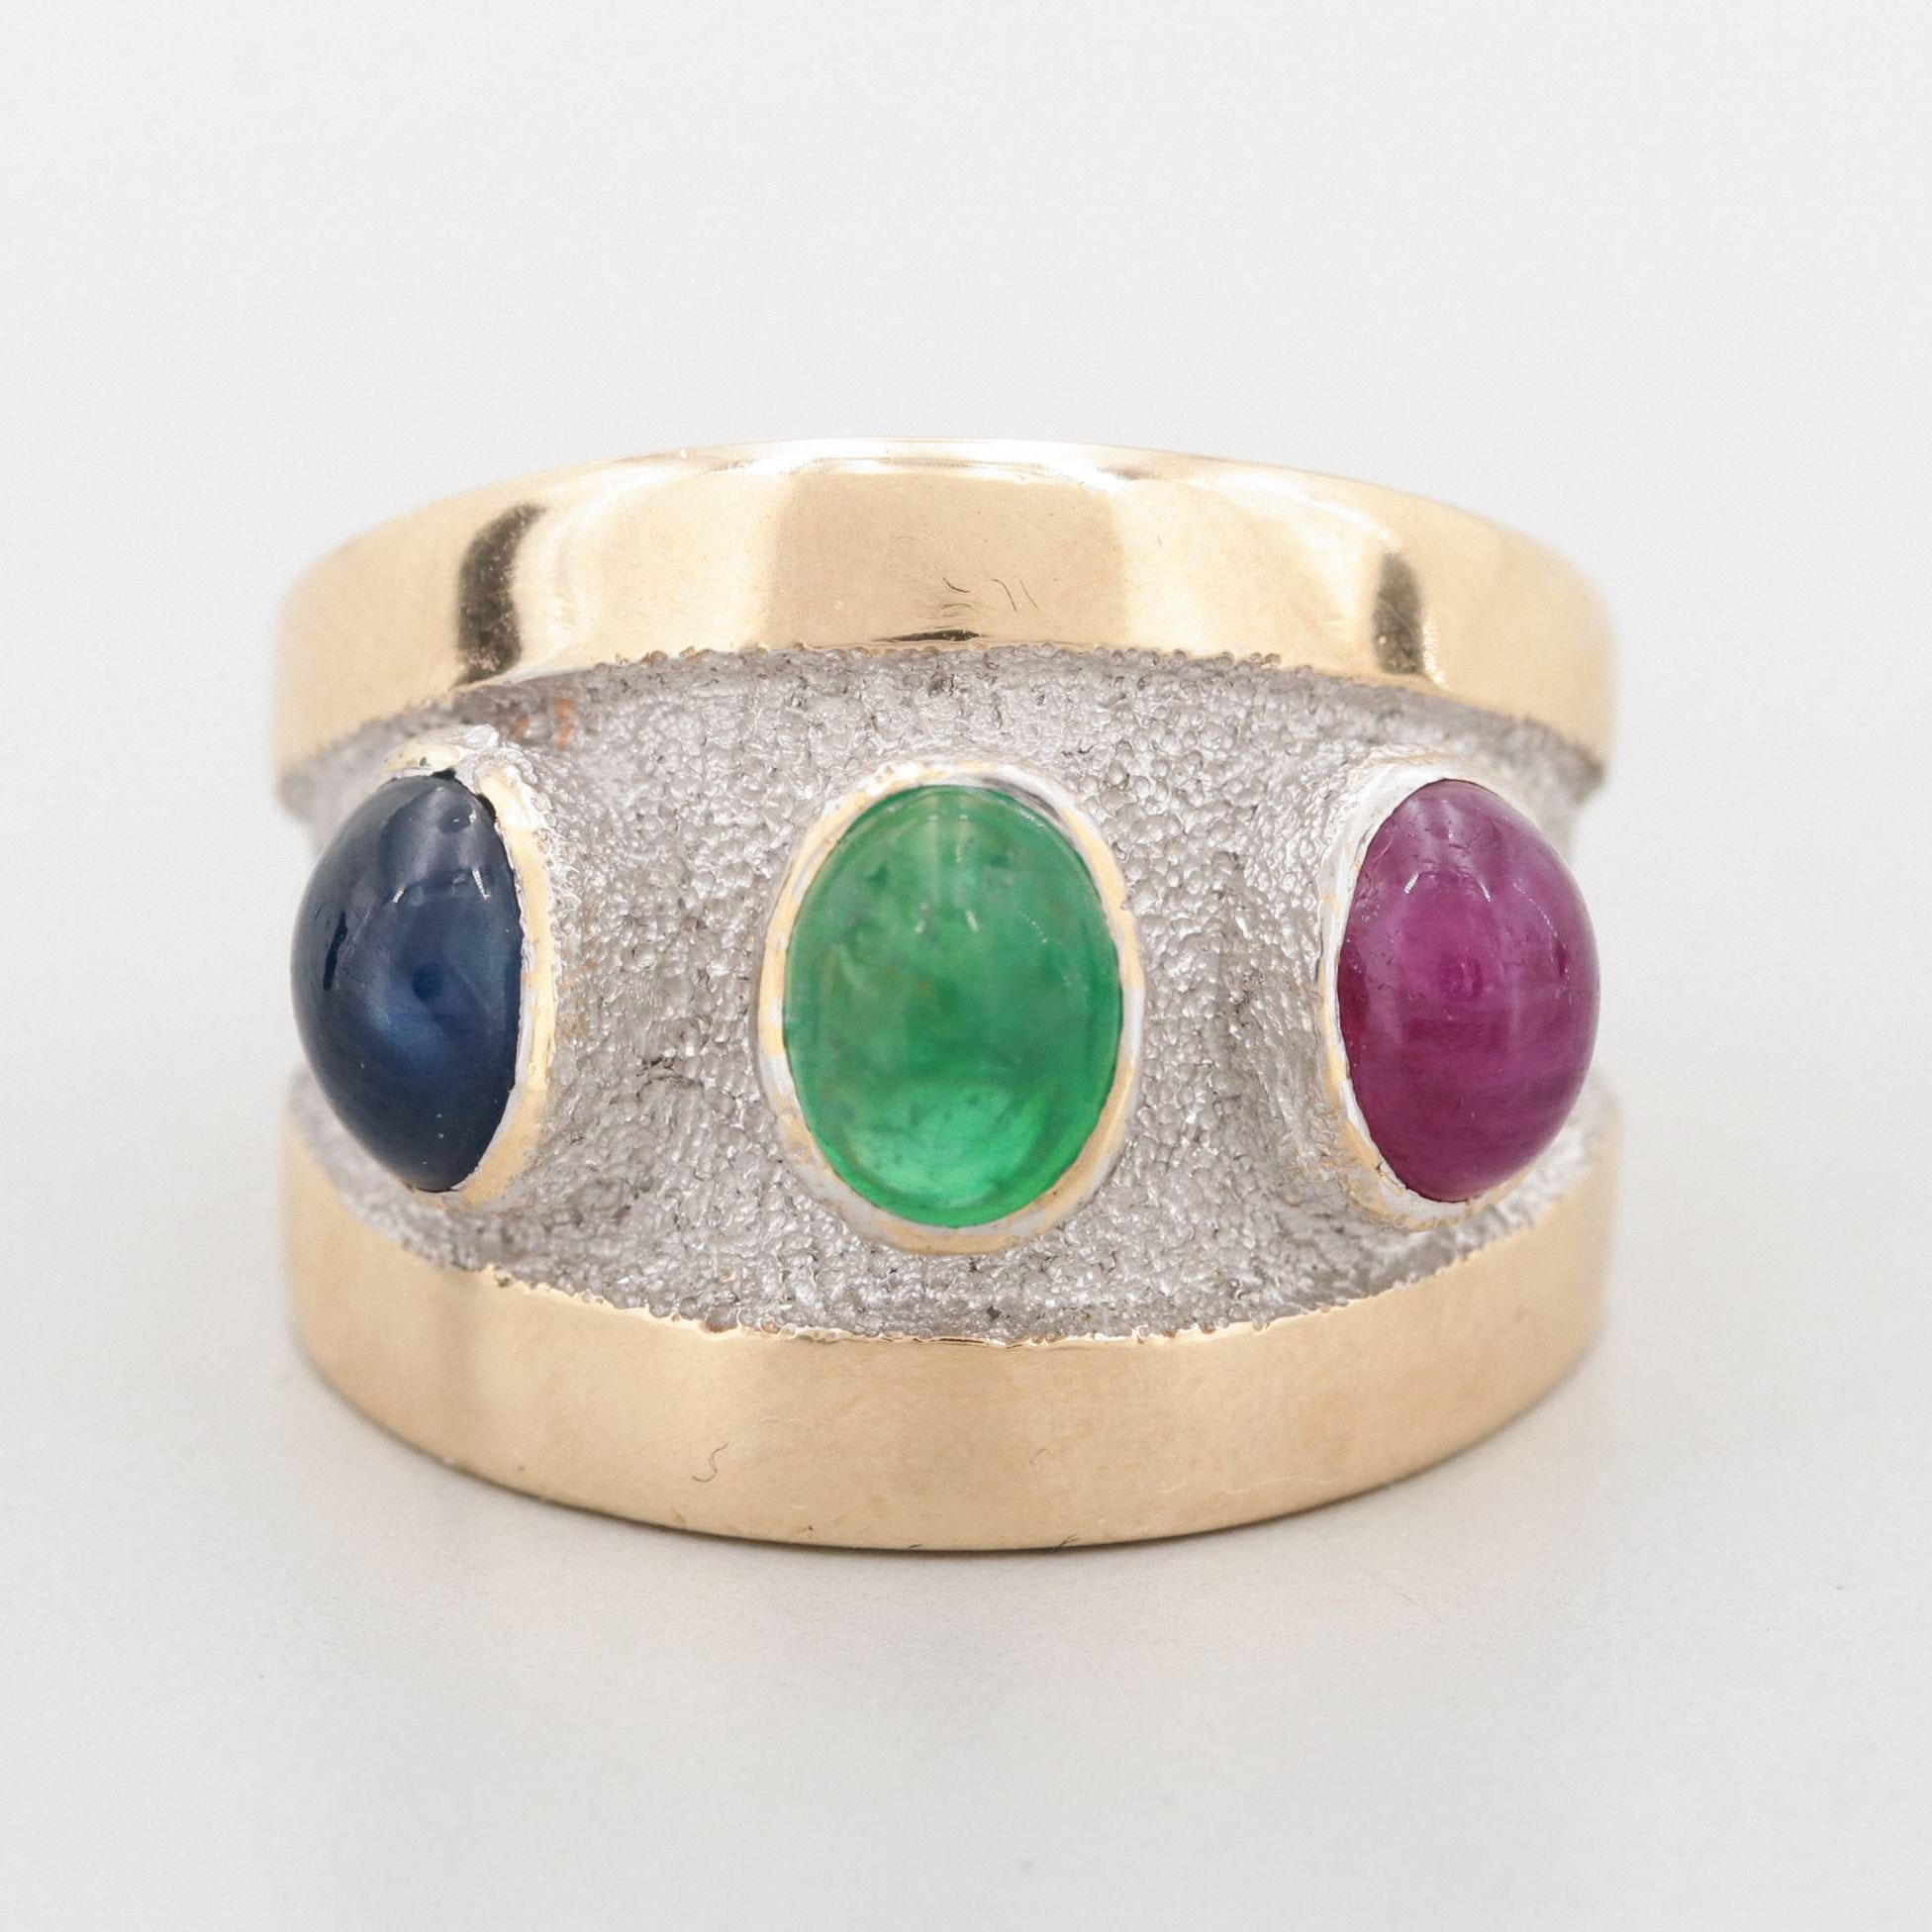 Bellarri 14K Yellow Gold Emerald, Ruby and Sapphire Ring